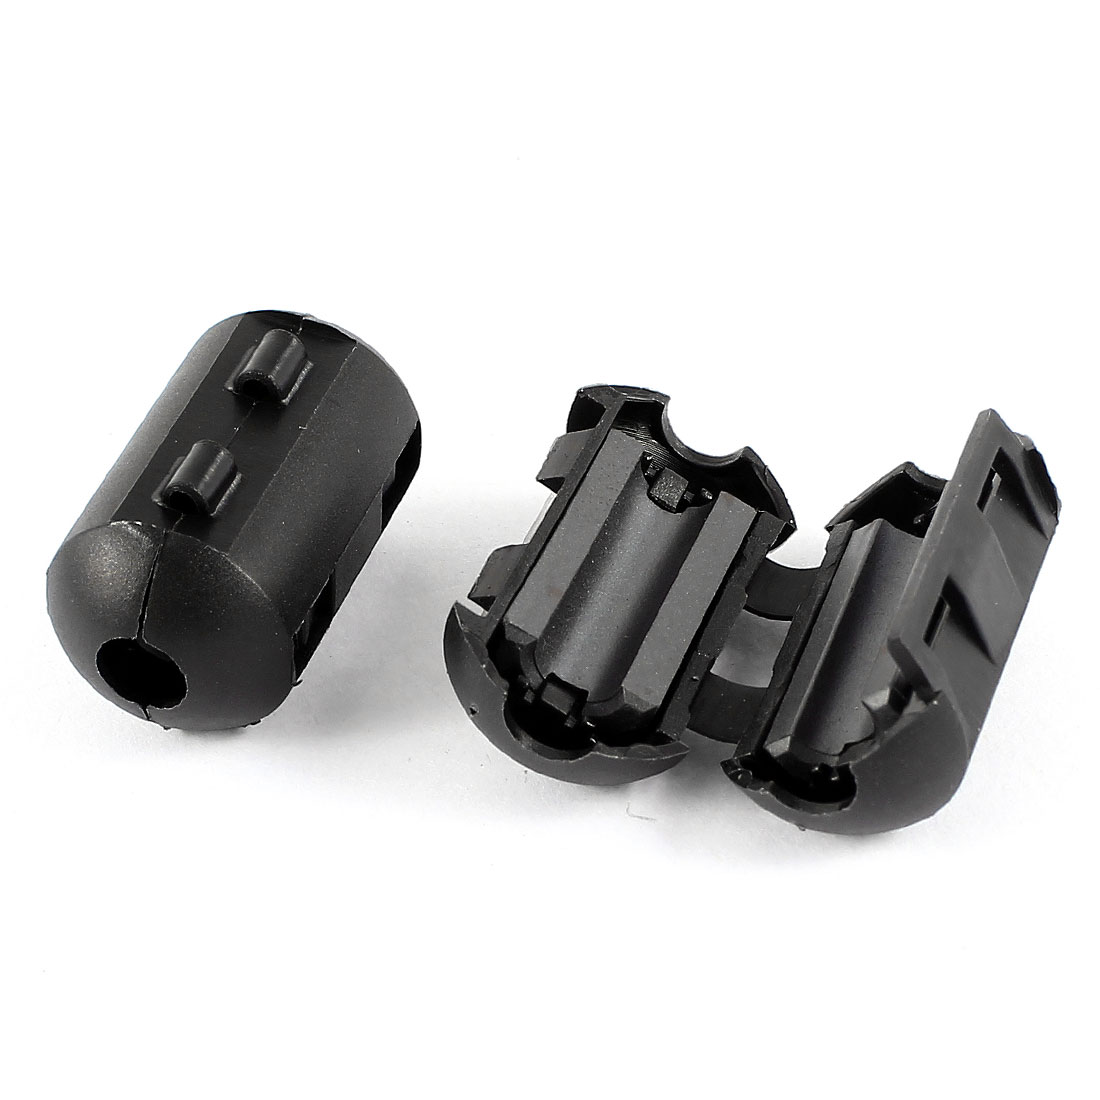 2Pcs 7mm Cable Hole Dia Clip On Electronic Ferrite Core Cable EMI Noise Suppressor Ring Filter Black